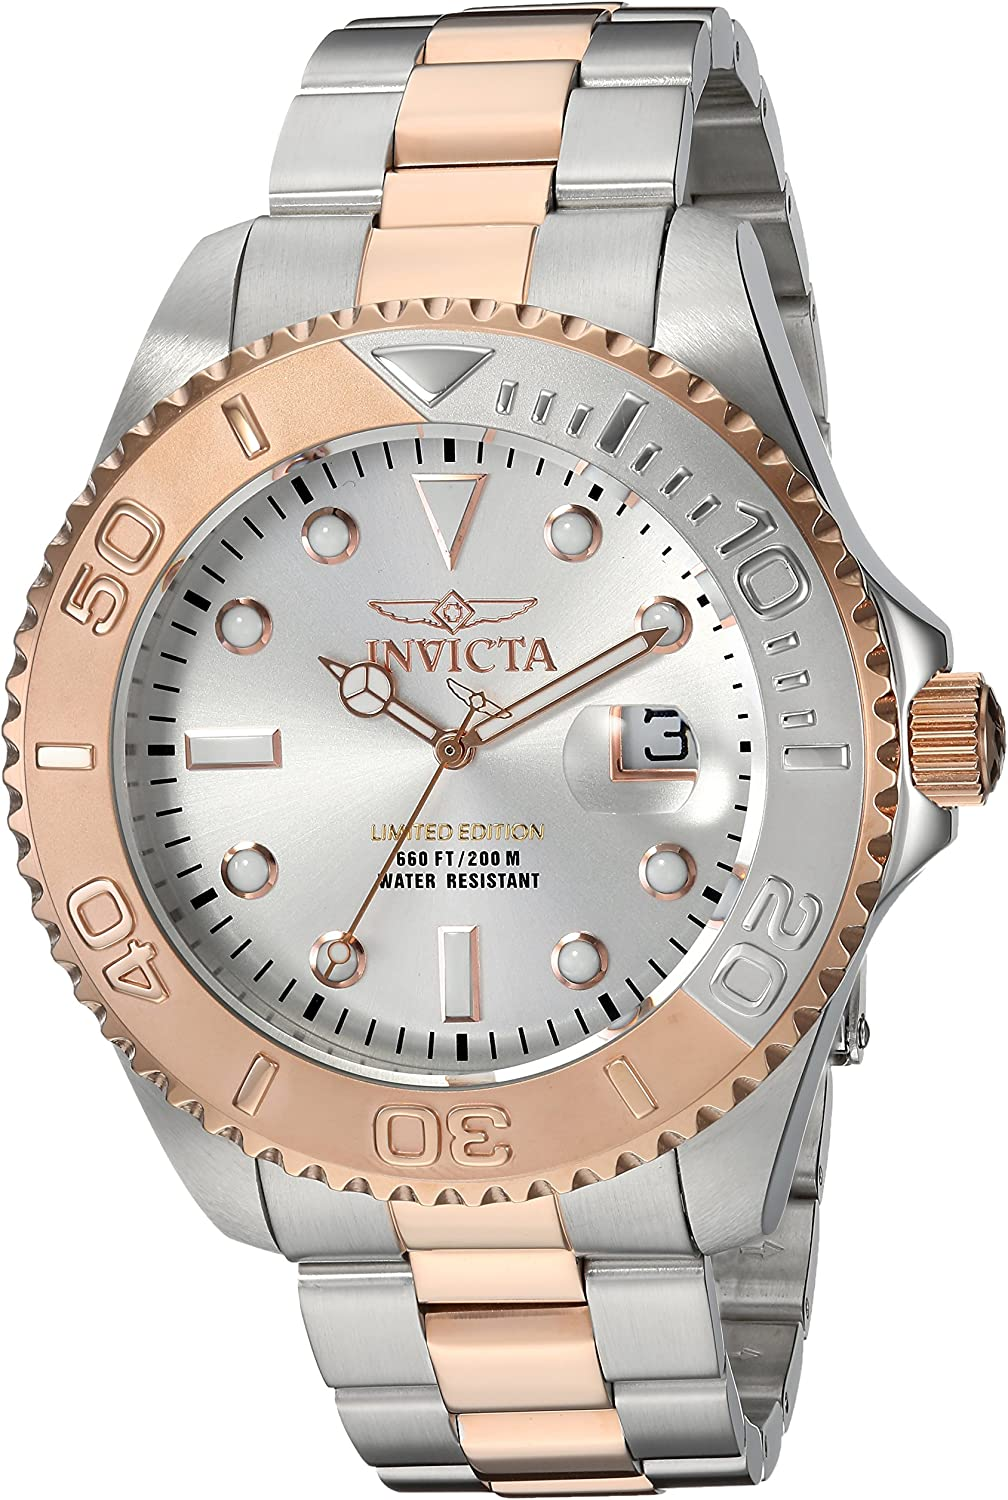 Invicta Men s Pro Diver Quartz Diving Watch with Two-Tone-Stainless-Steel Strap, 9 Model 24624